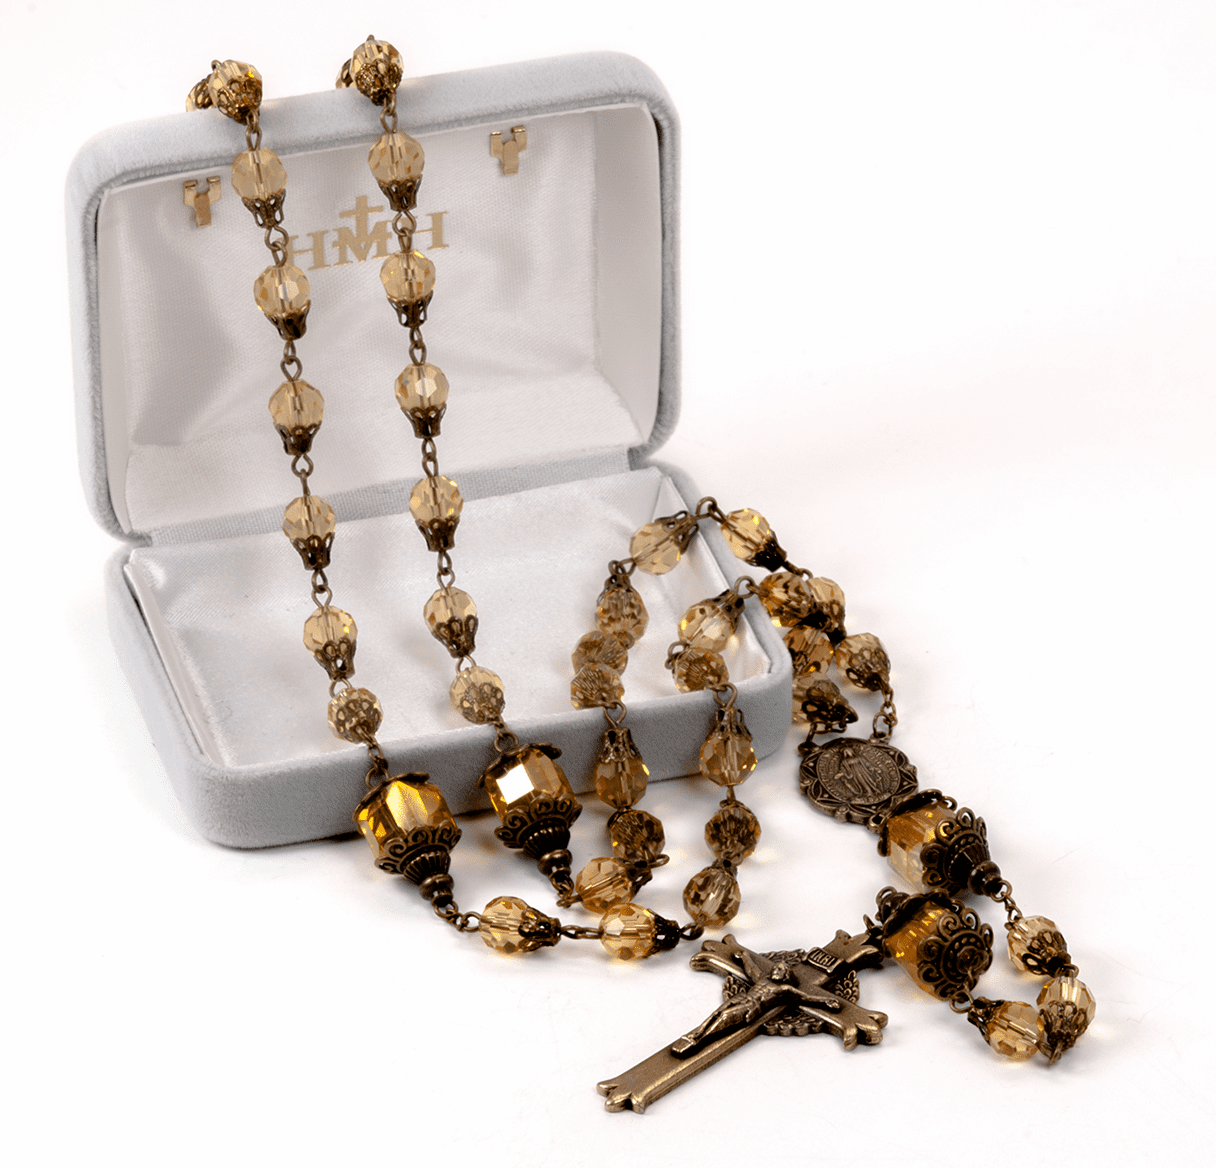 HMH Religious Pewter and Brass Rosaries